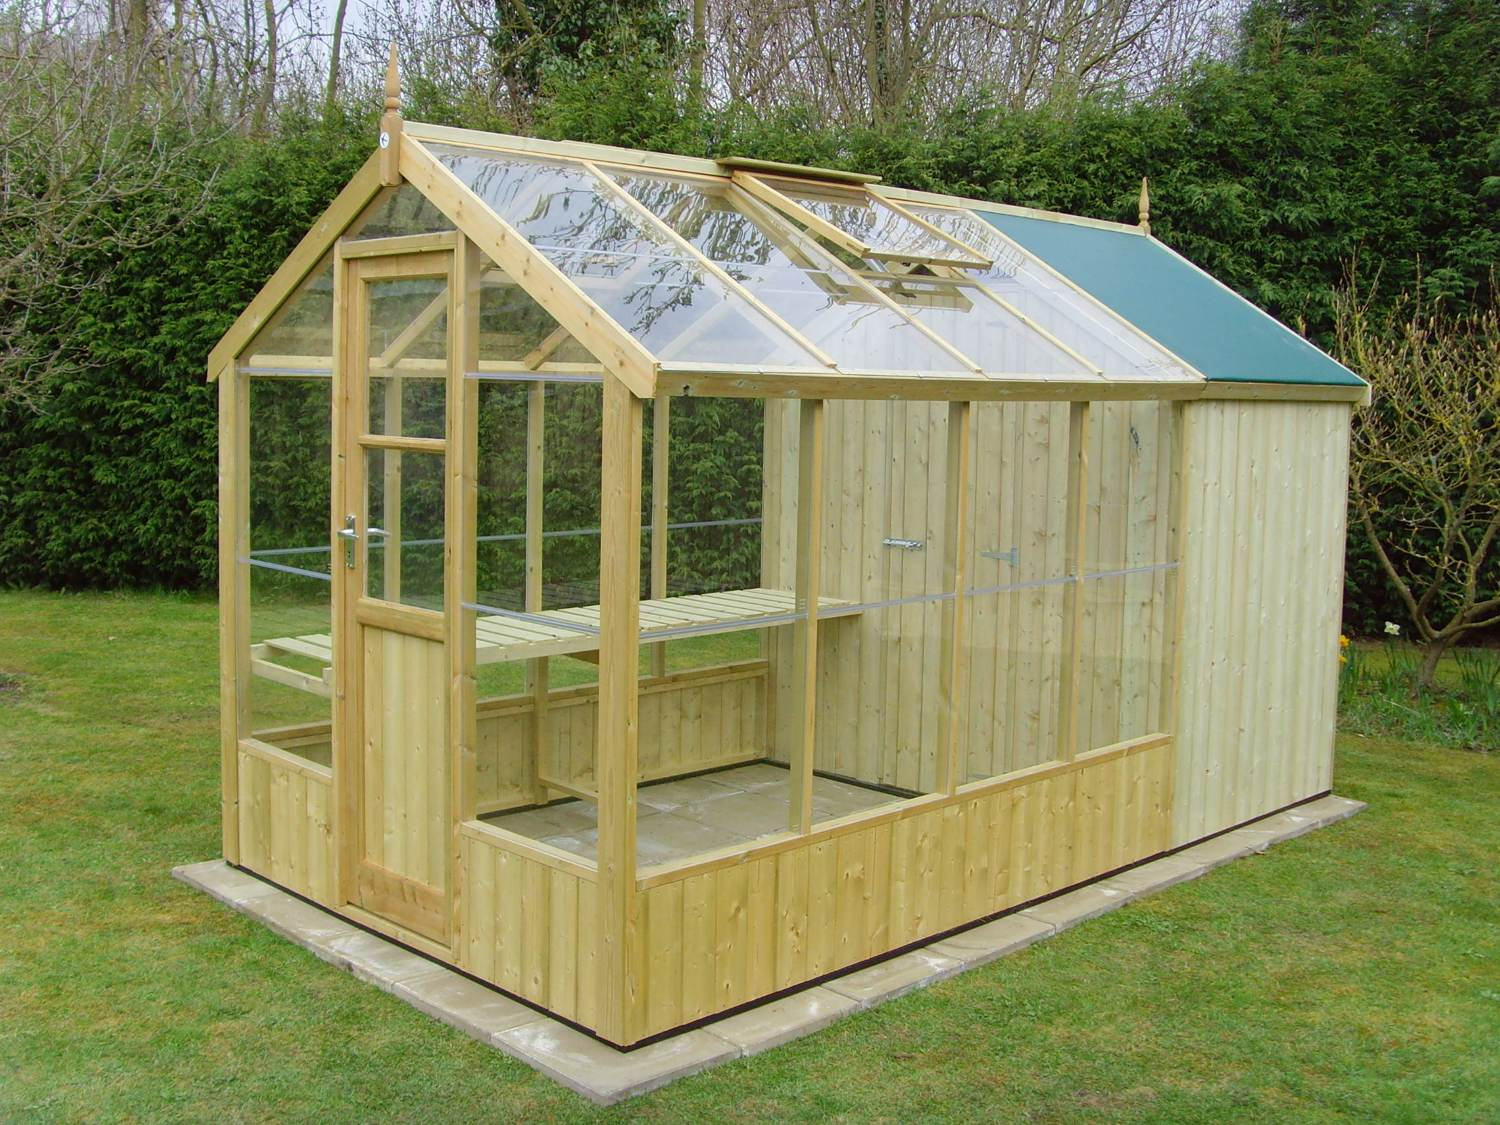 Swallow kingfisher 6x8 wooden greenhouse greenhouse stores Green house sheds